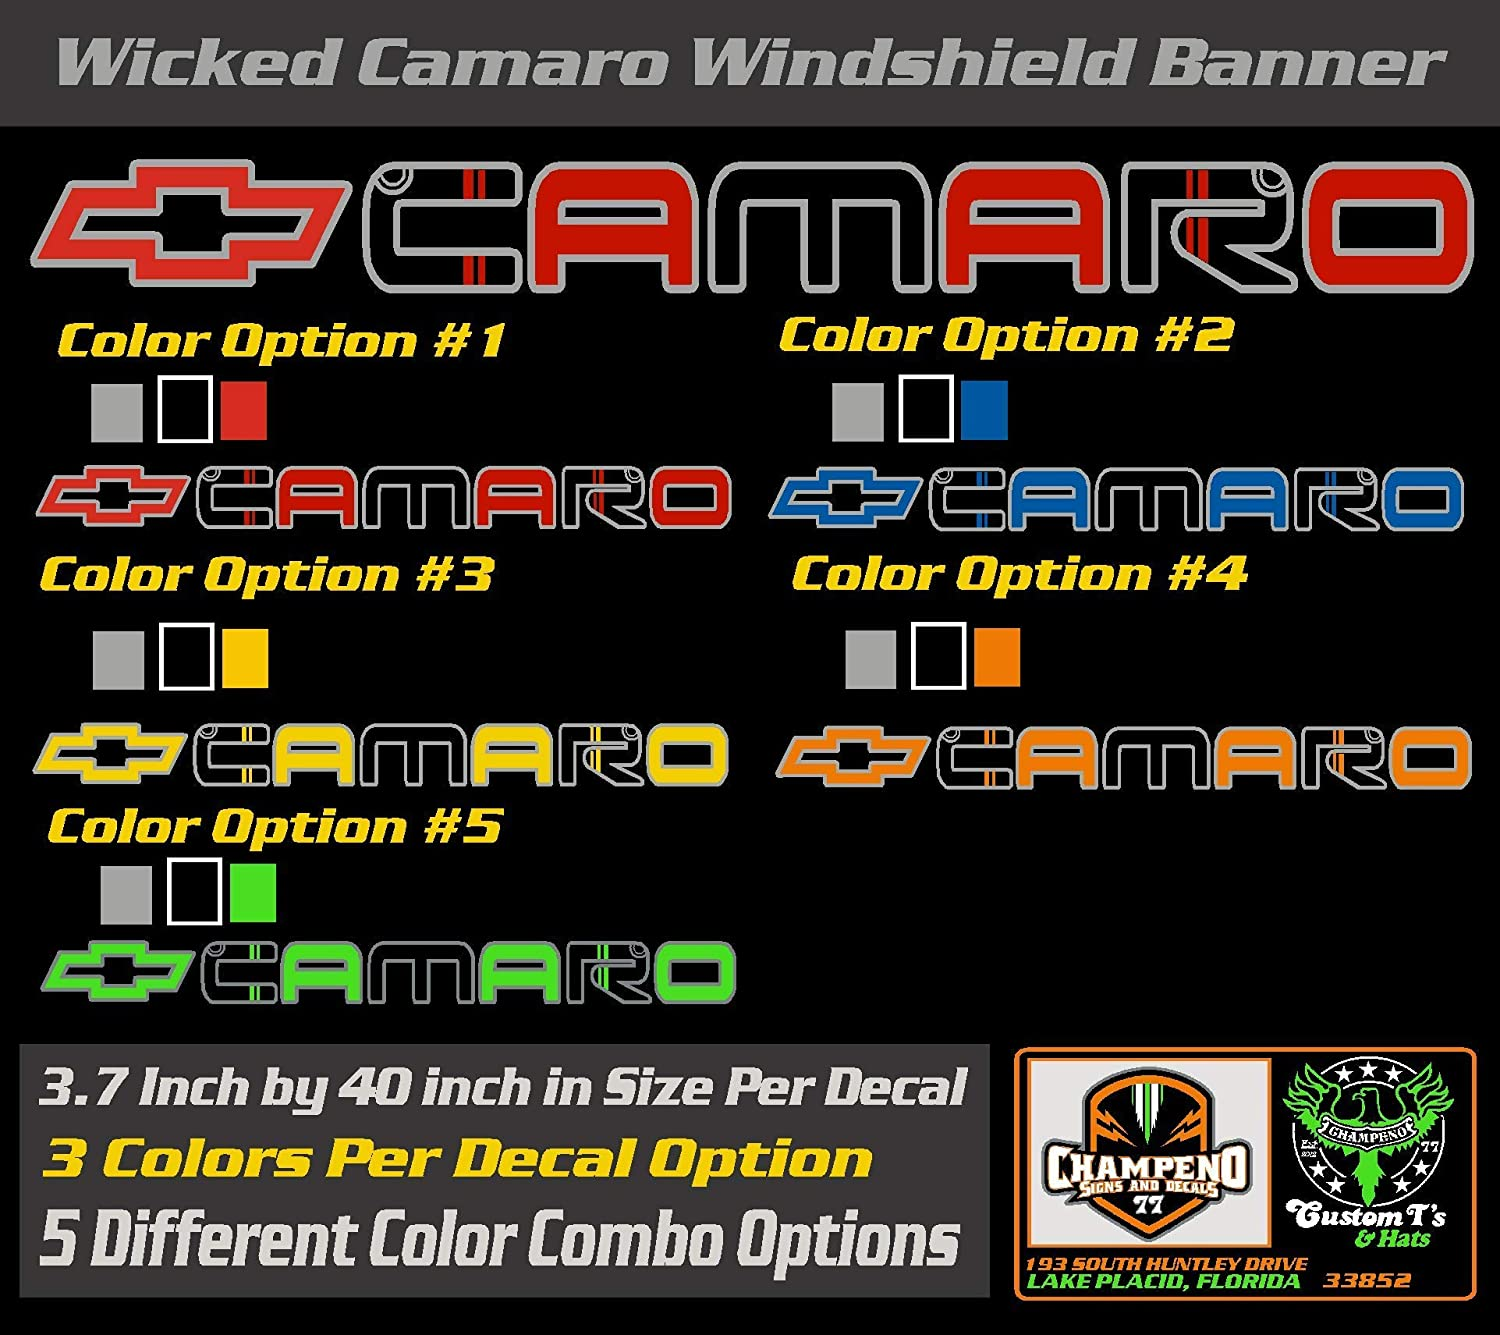 Bow-tie Camaro Windshield Decal//Windshield Banner//Sticker//Graphic//Emblem 6 to 8 Year Outdoor Life One 3.7 inch by 40 inch Multi-Colored with 5 Color Combos to choose from Wicked Chevy Chevrolet